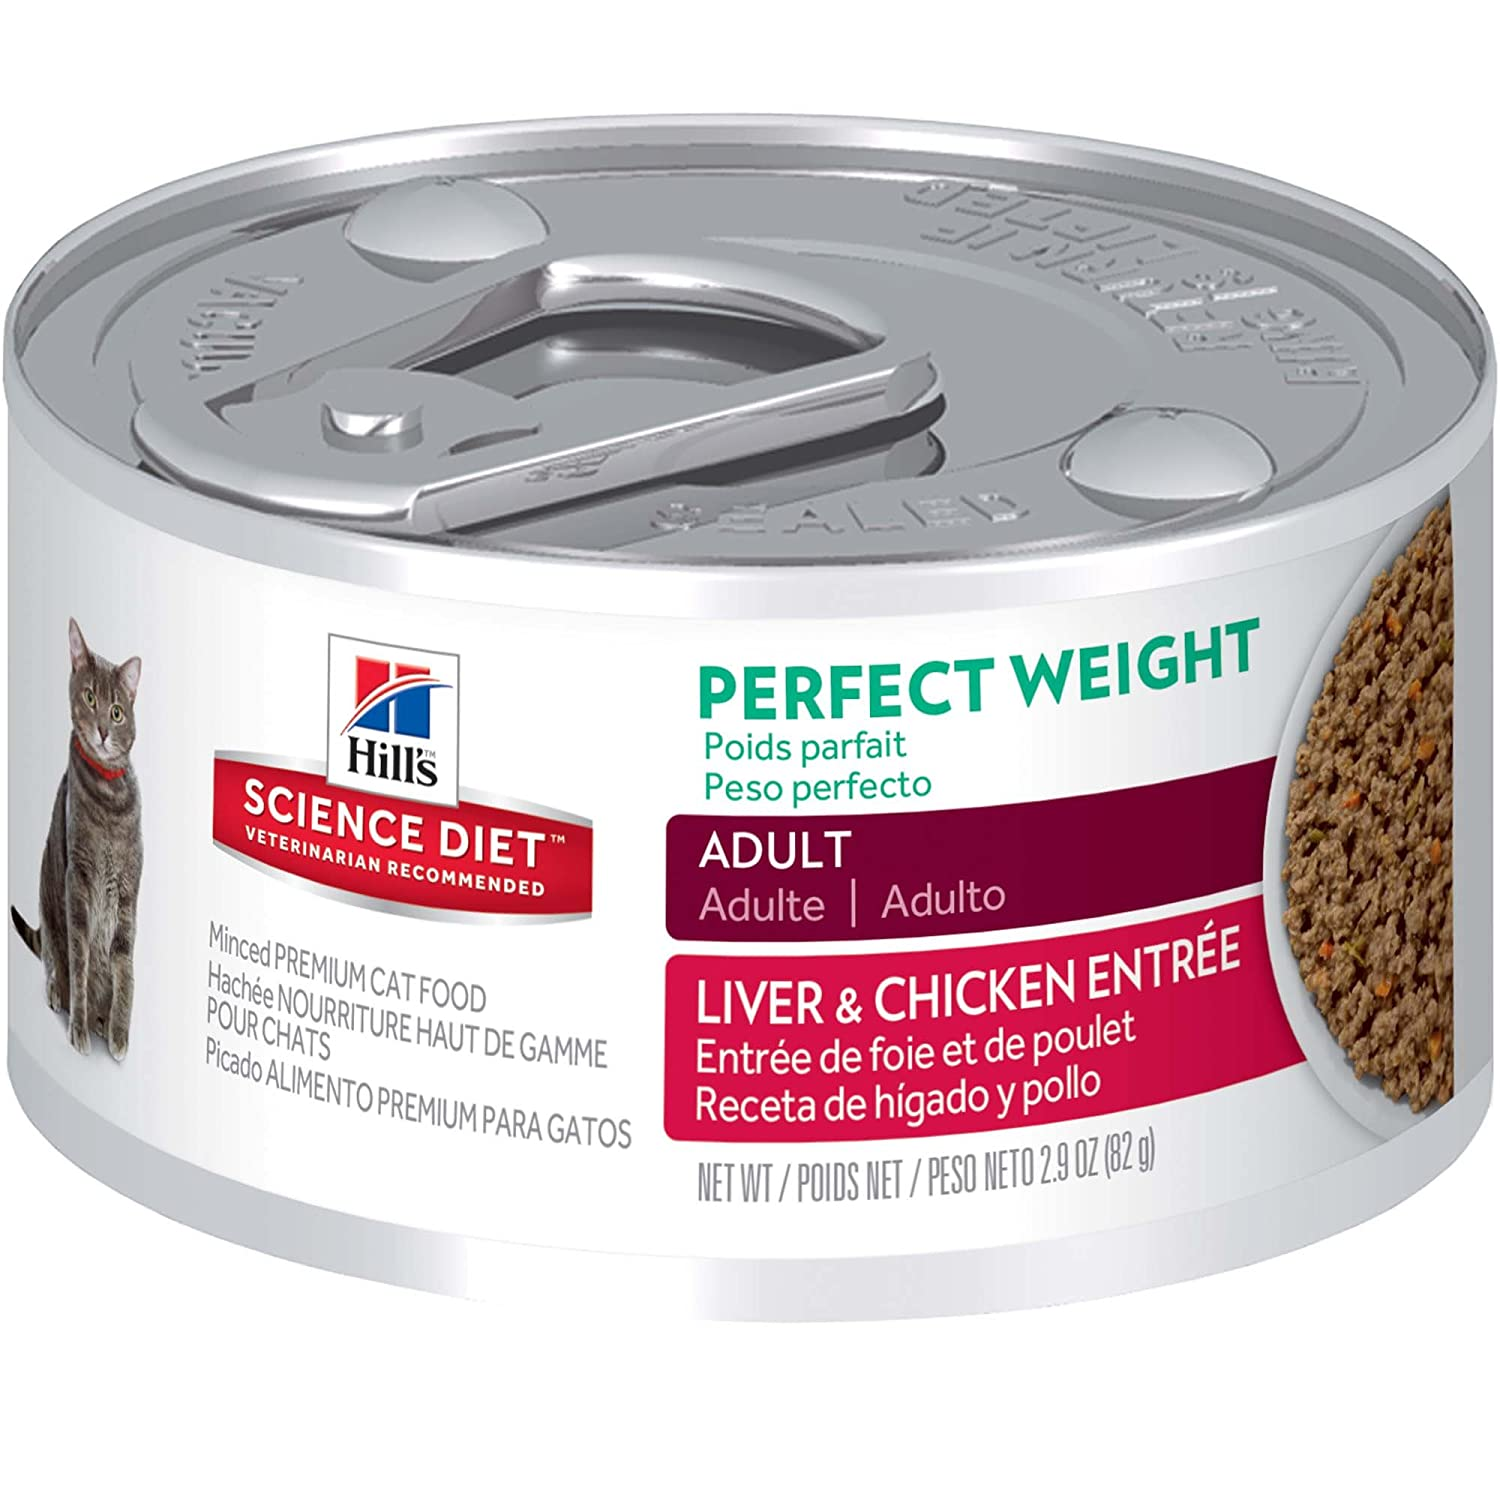 Hill's Science Diet Adult Perfect Weight Canned Cat Food, 2.9 oz, 24-pack